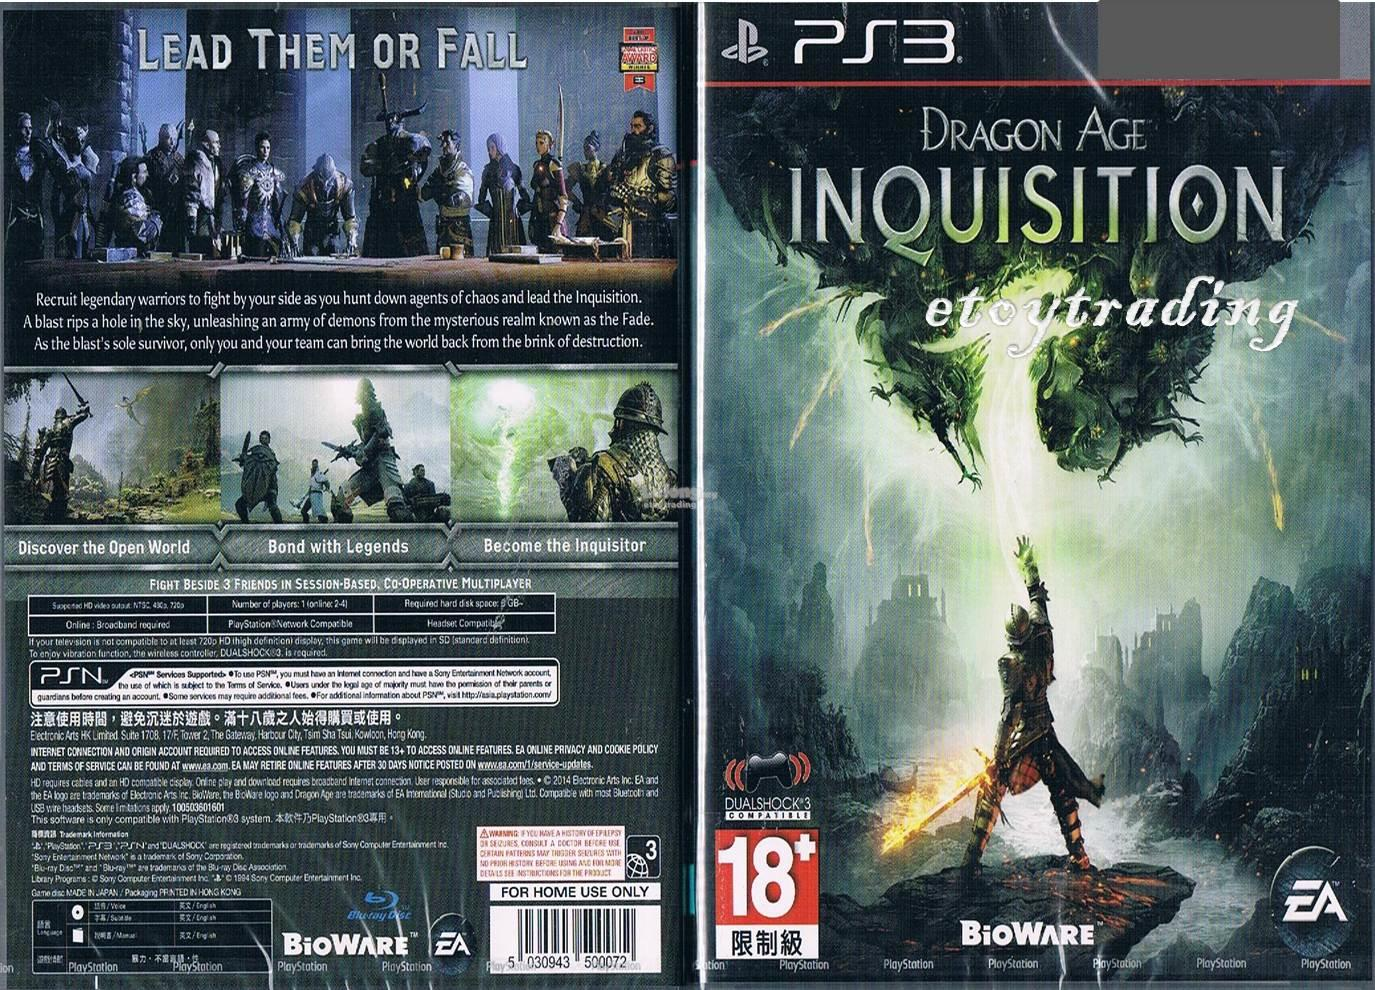 PS3 DRAGON AGE INQUISITION R3 N/SEALED RM90 WHATSAPP +60102209266 !!